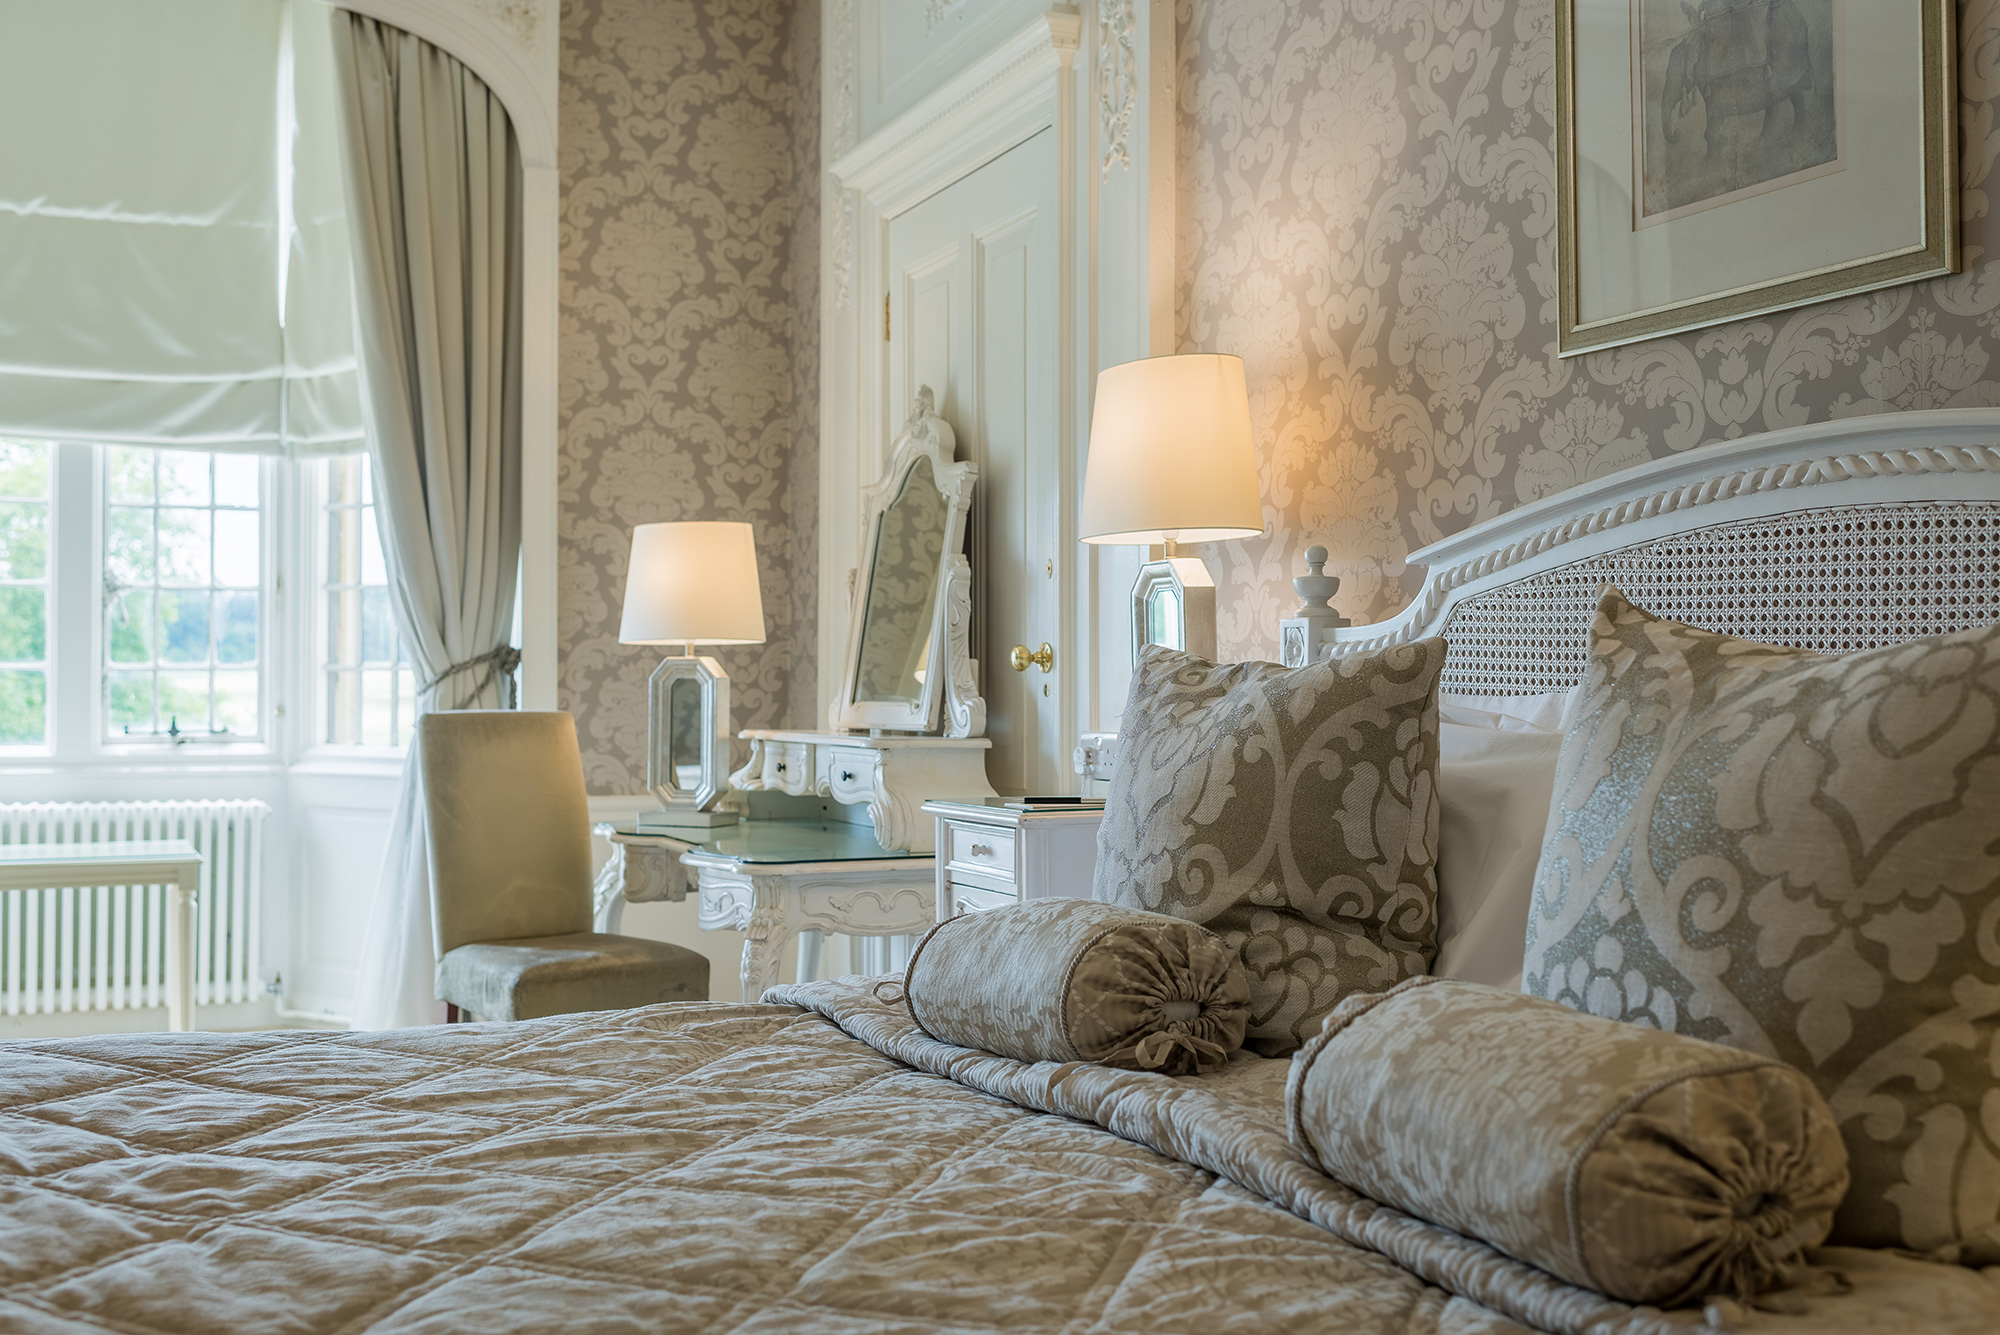 hotel-bedroom-photography-bed-detail.jpg